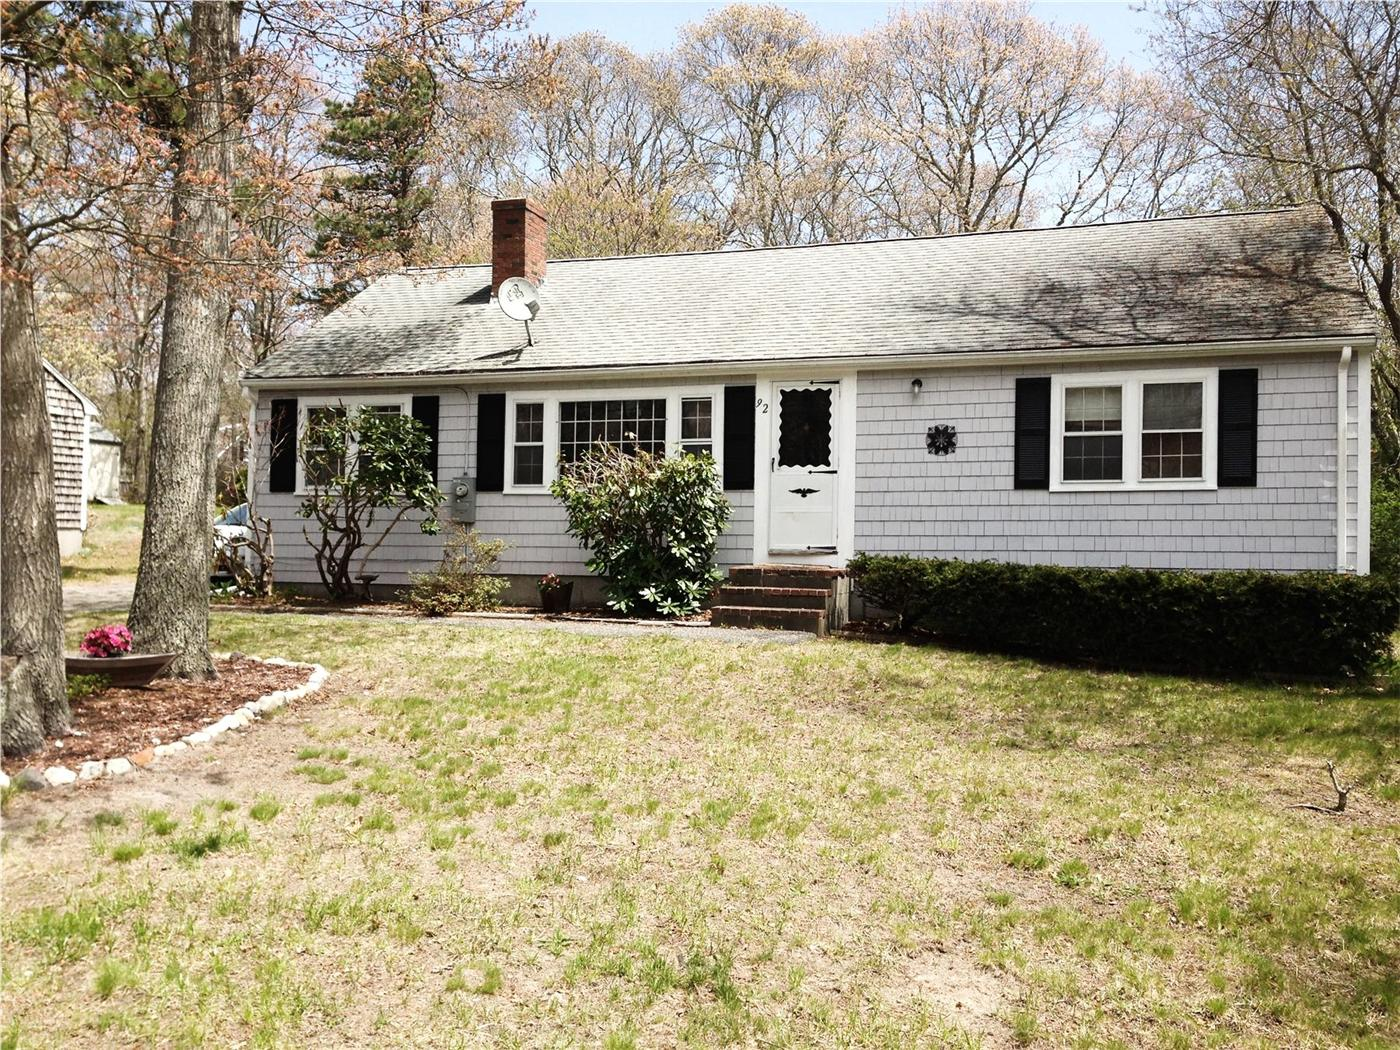 Hyannis vacation rental home in cape cod ma 02601 id 24369 for Cape cod cabin